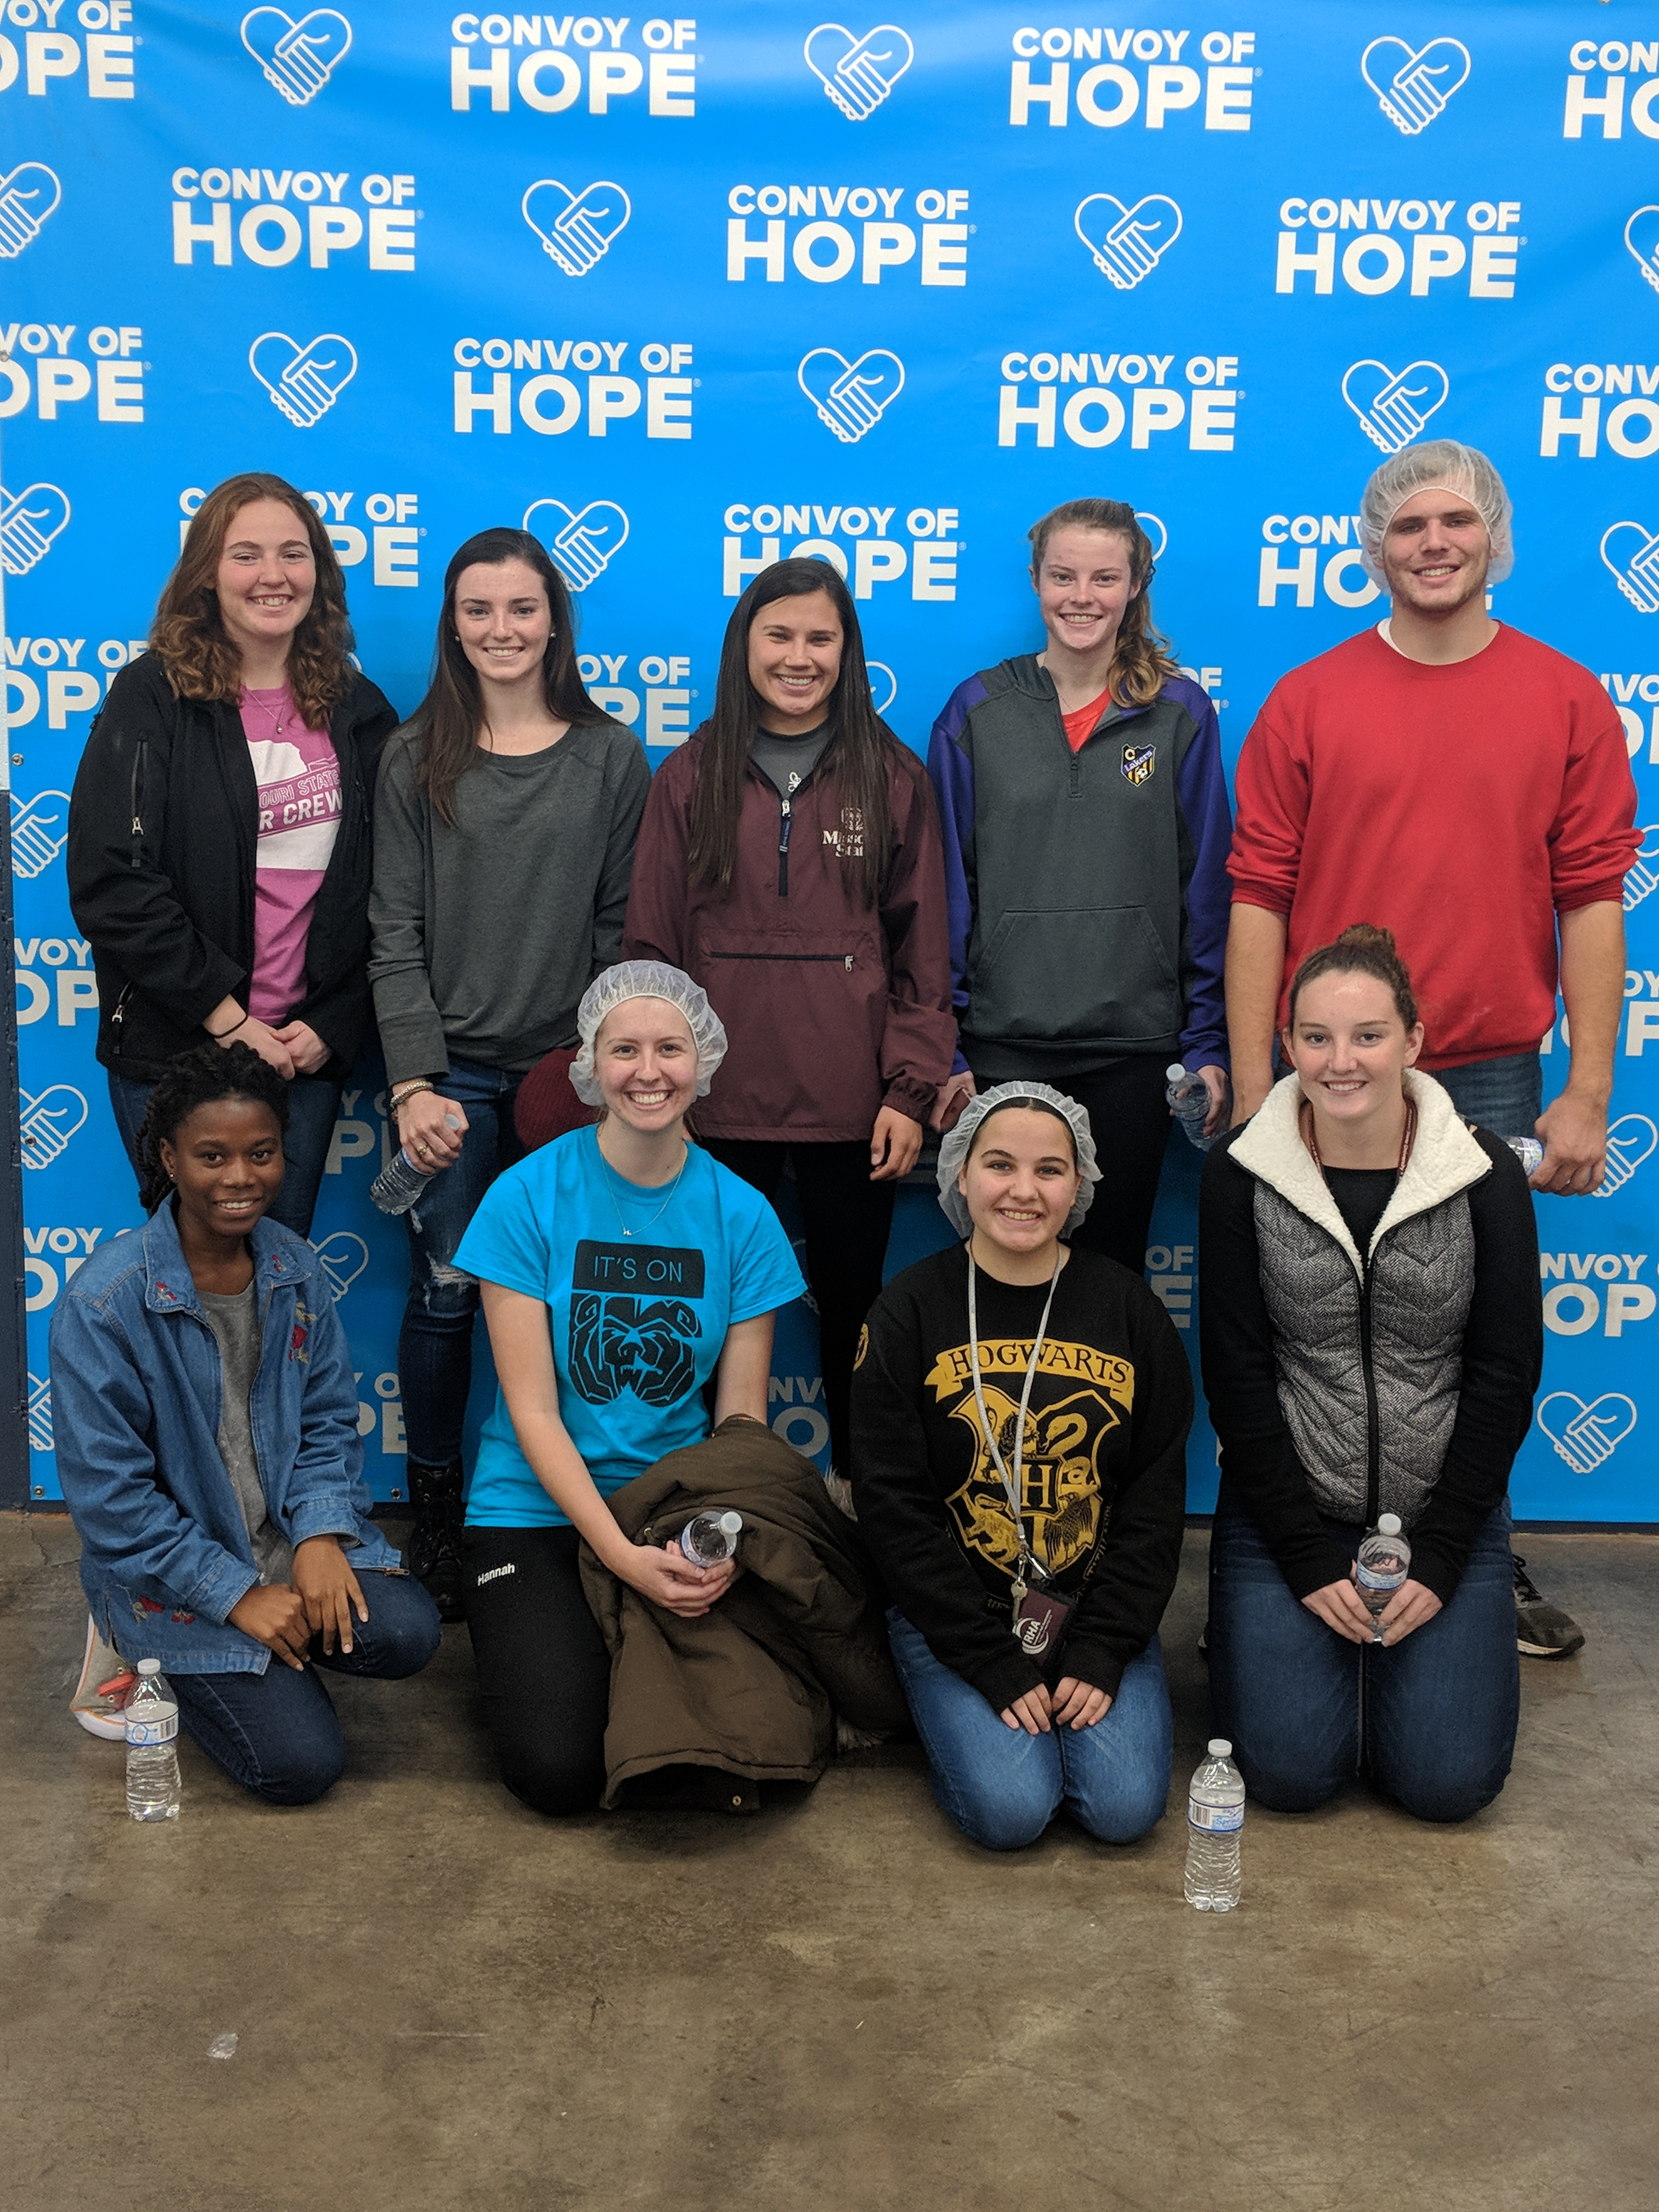 Members of the Bear Service Team pose in front of a Convoy of Hope backdrop